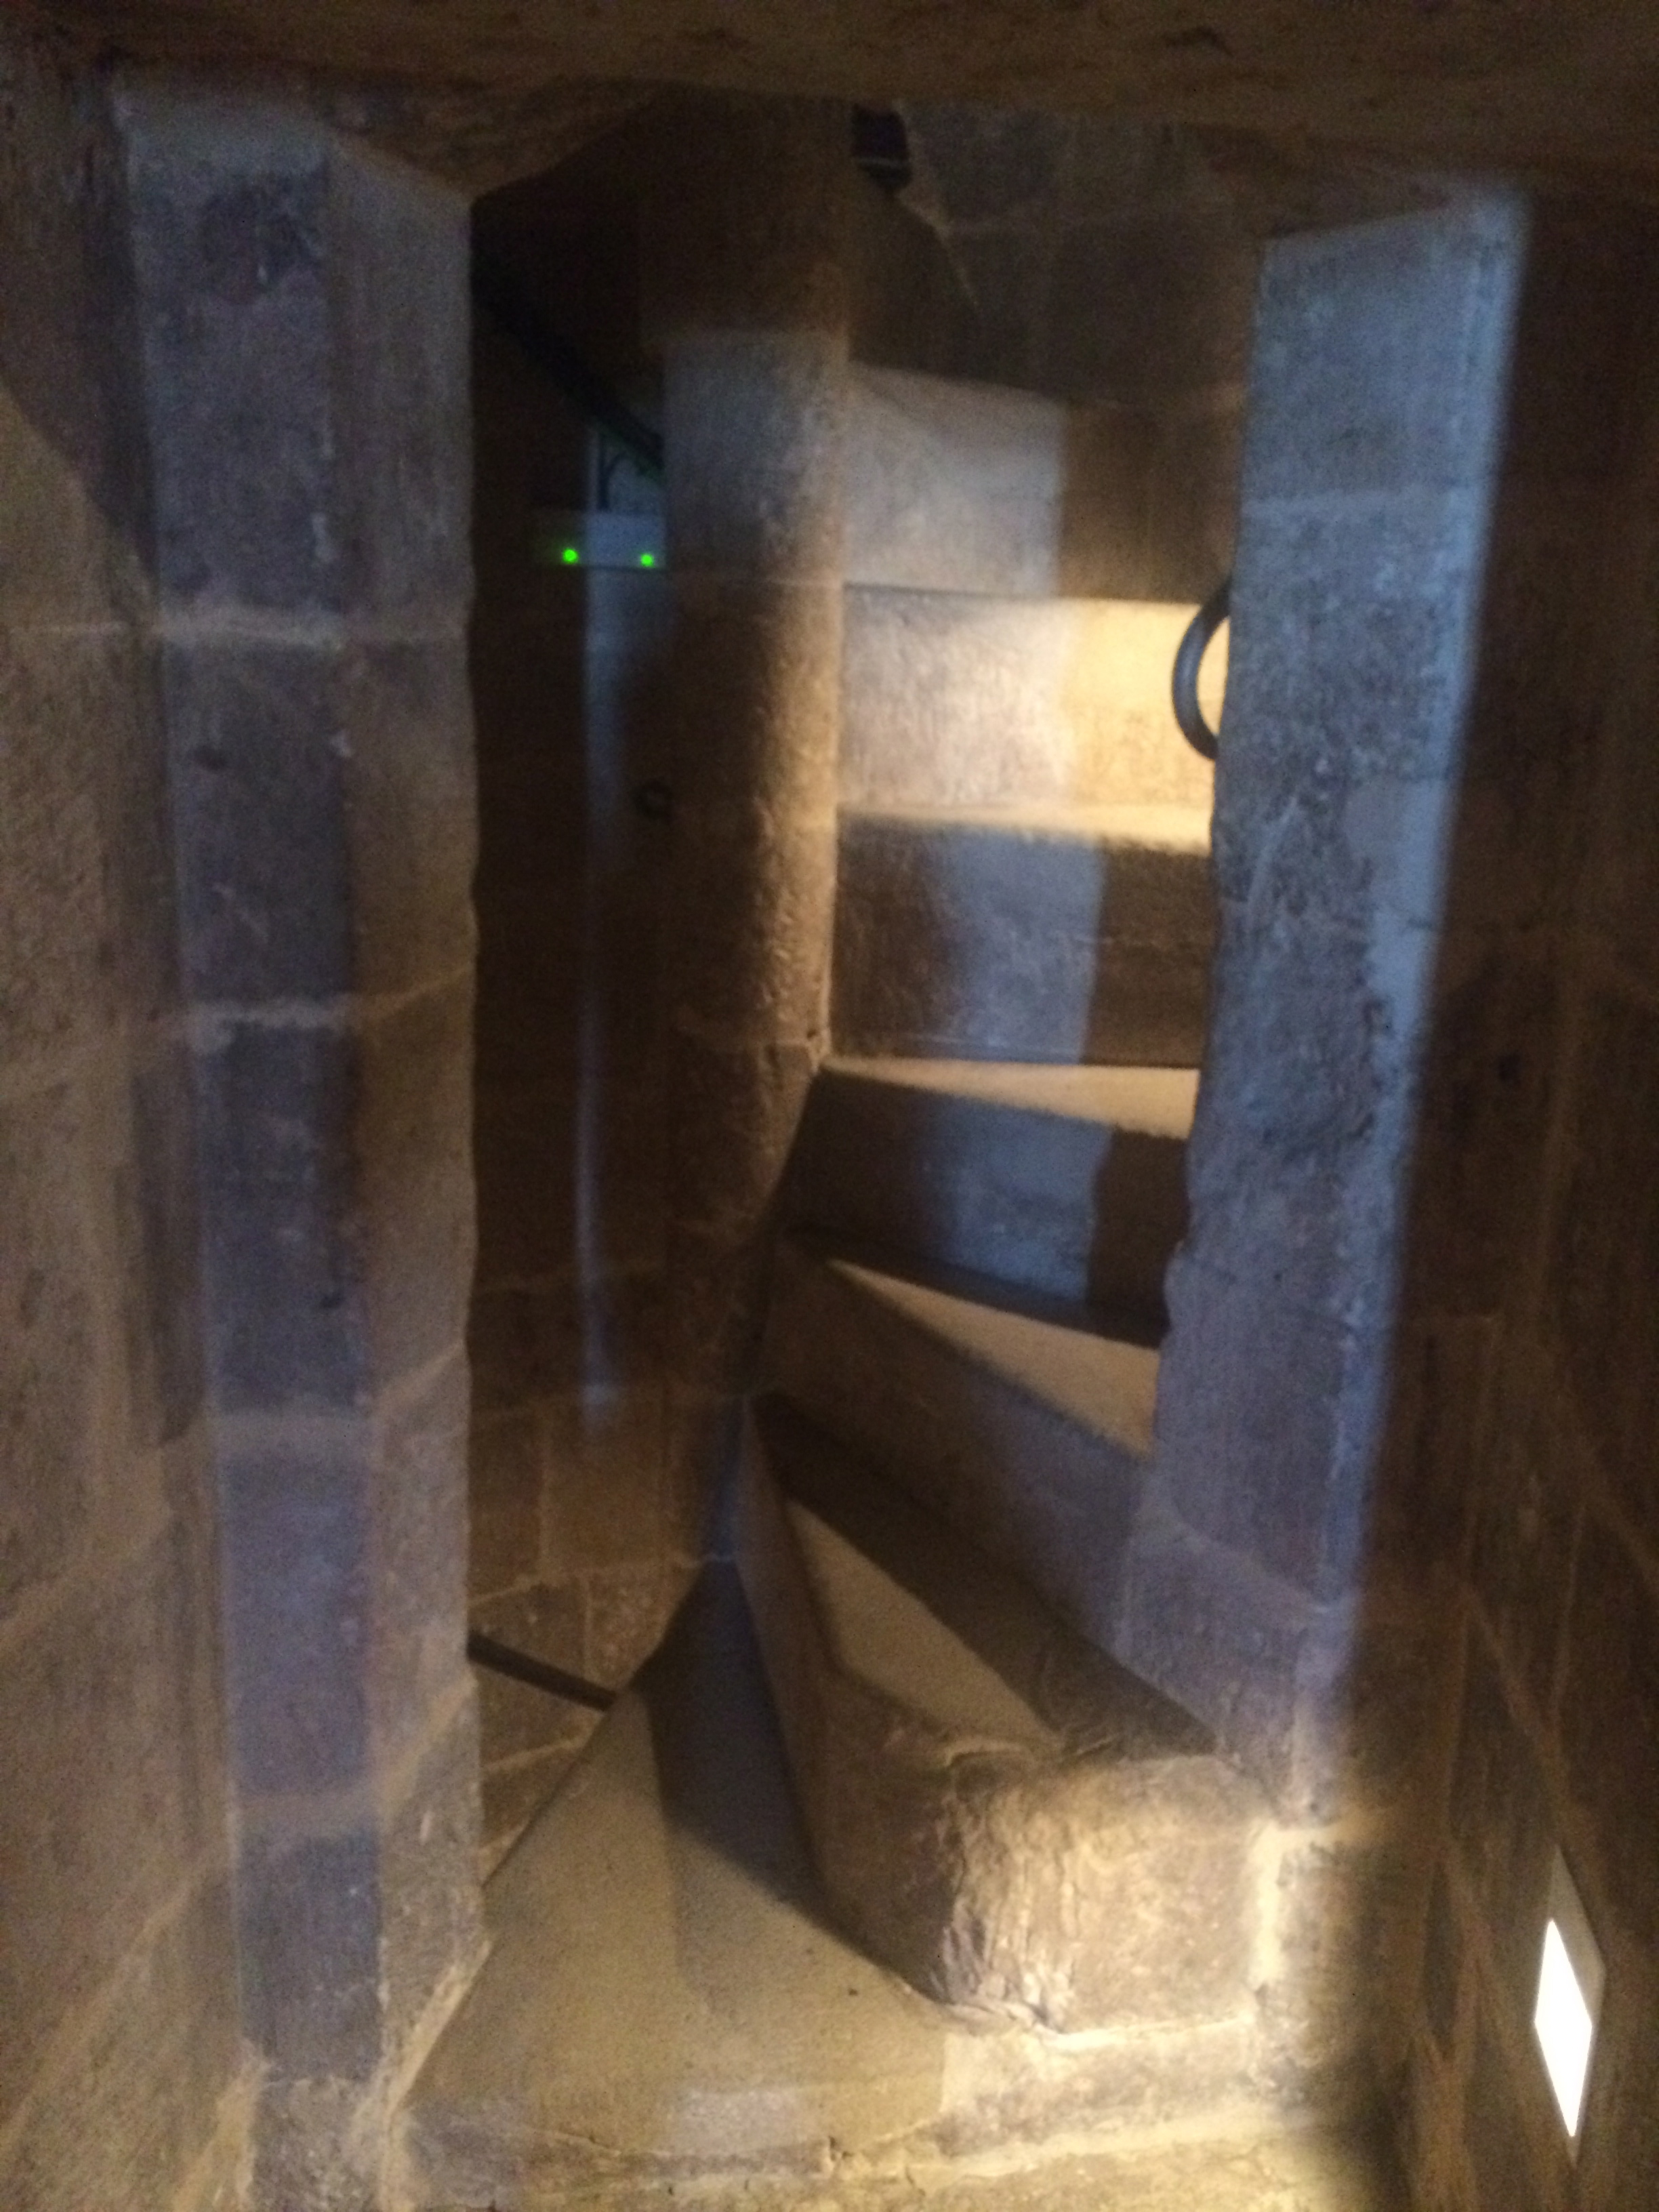 The spiral staircases were deceptively difficult to walk on. I'm amazed none of us fell and were added to the crypt below!